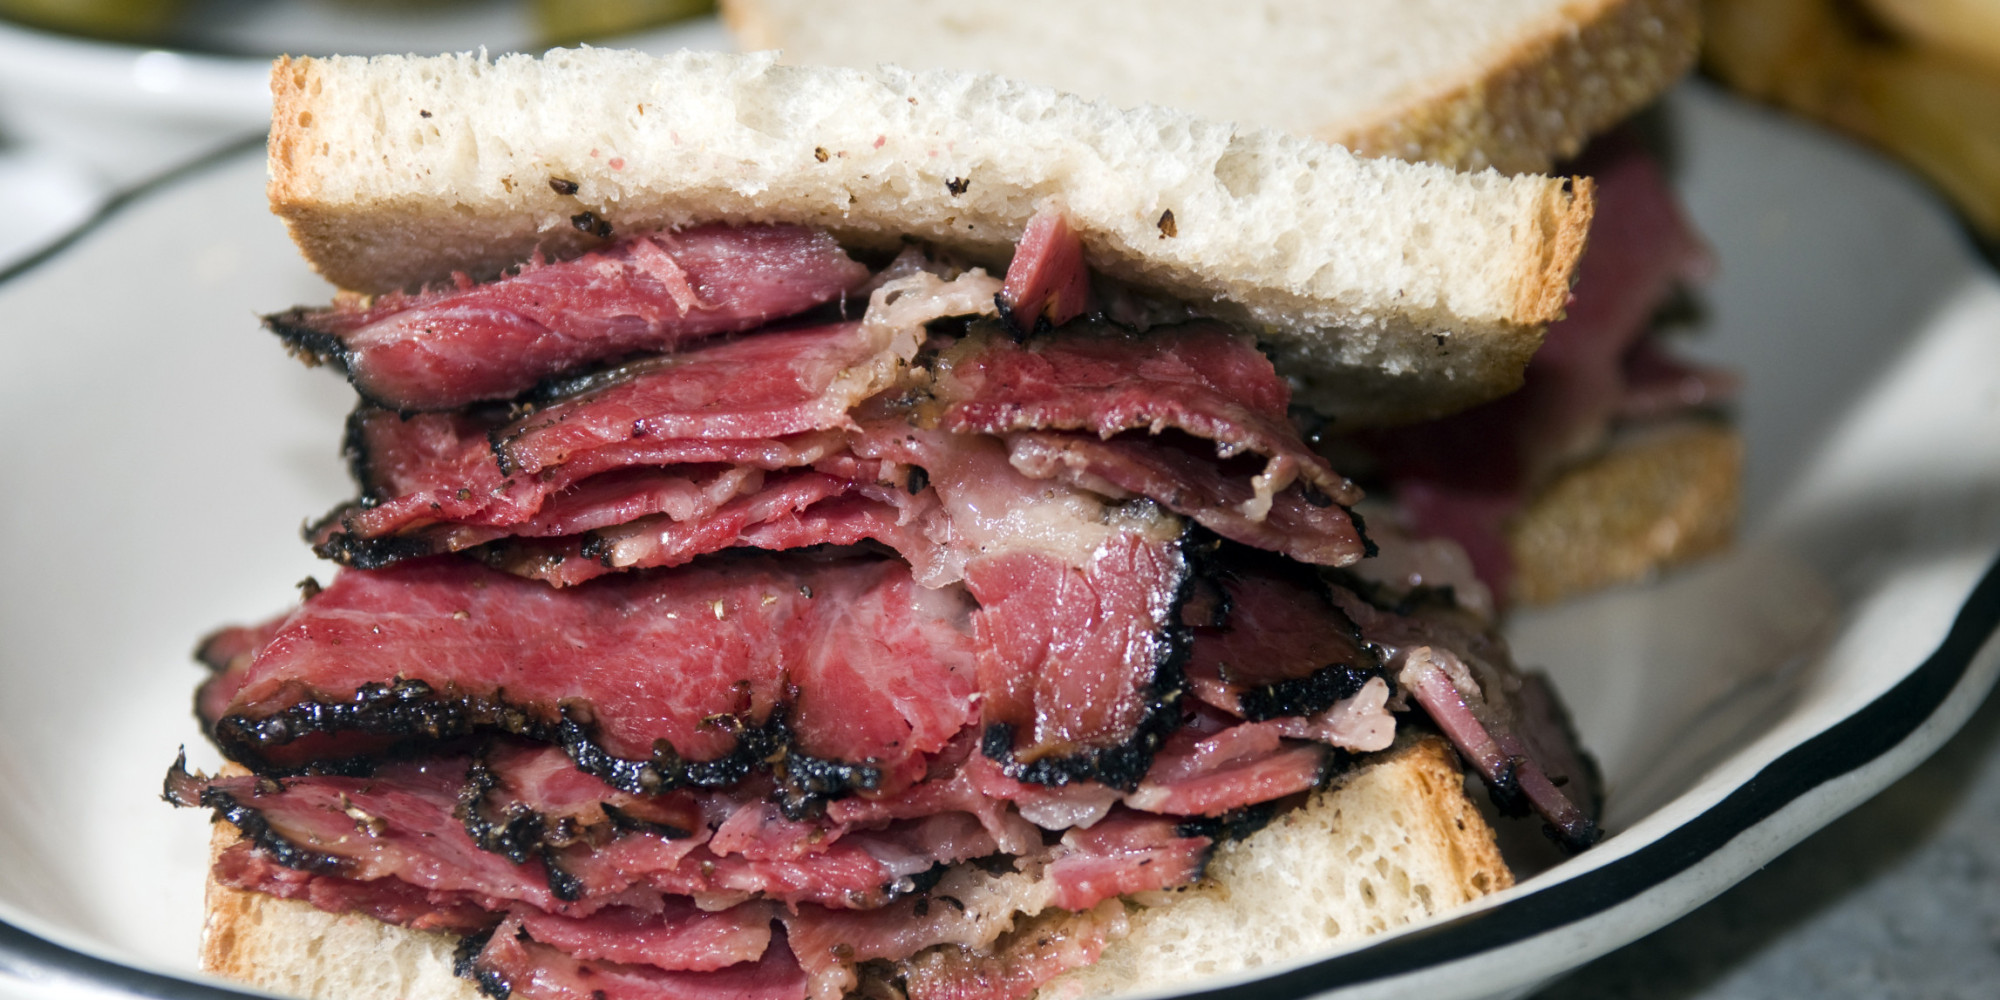 ... home cured corned beef authentic deli products corned beef pastrami